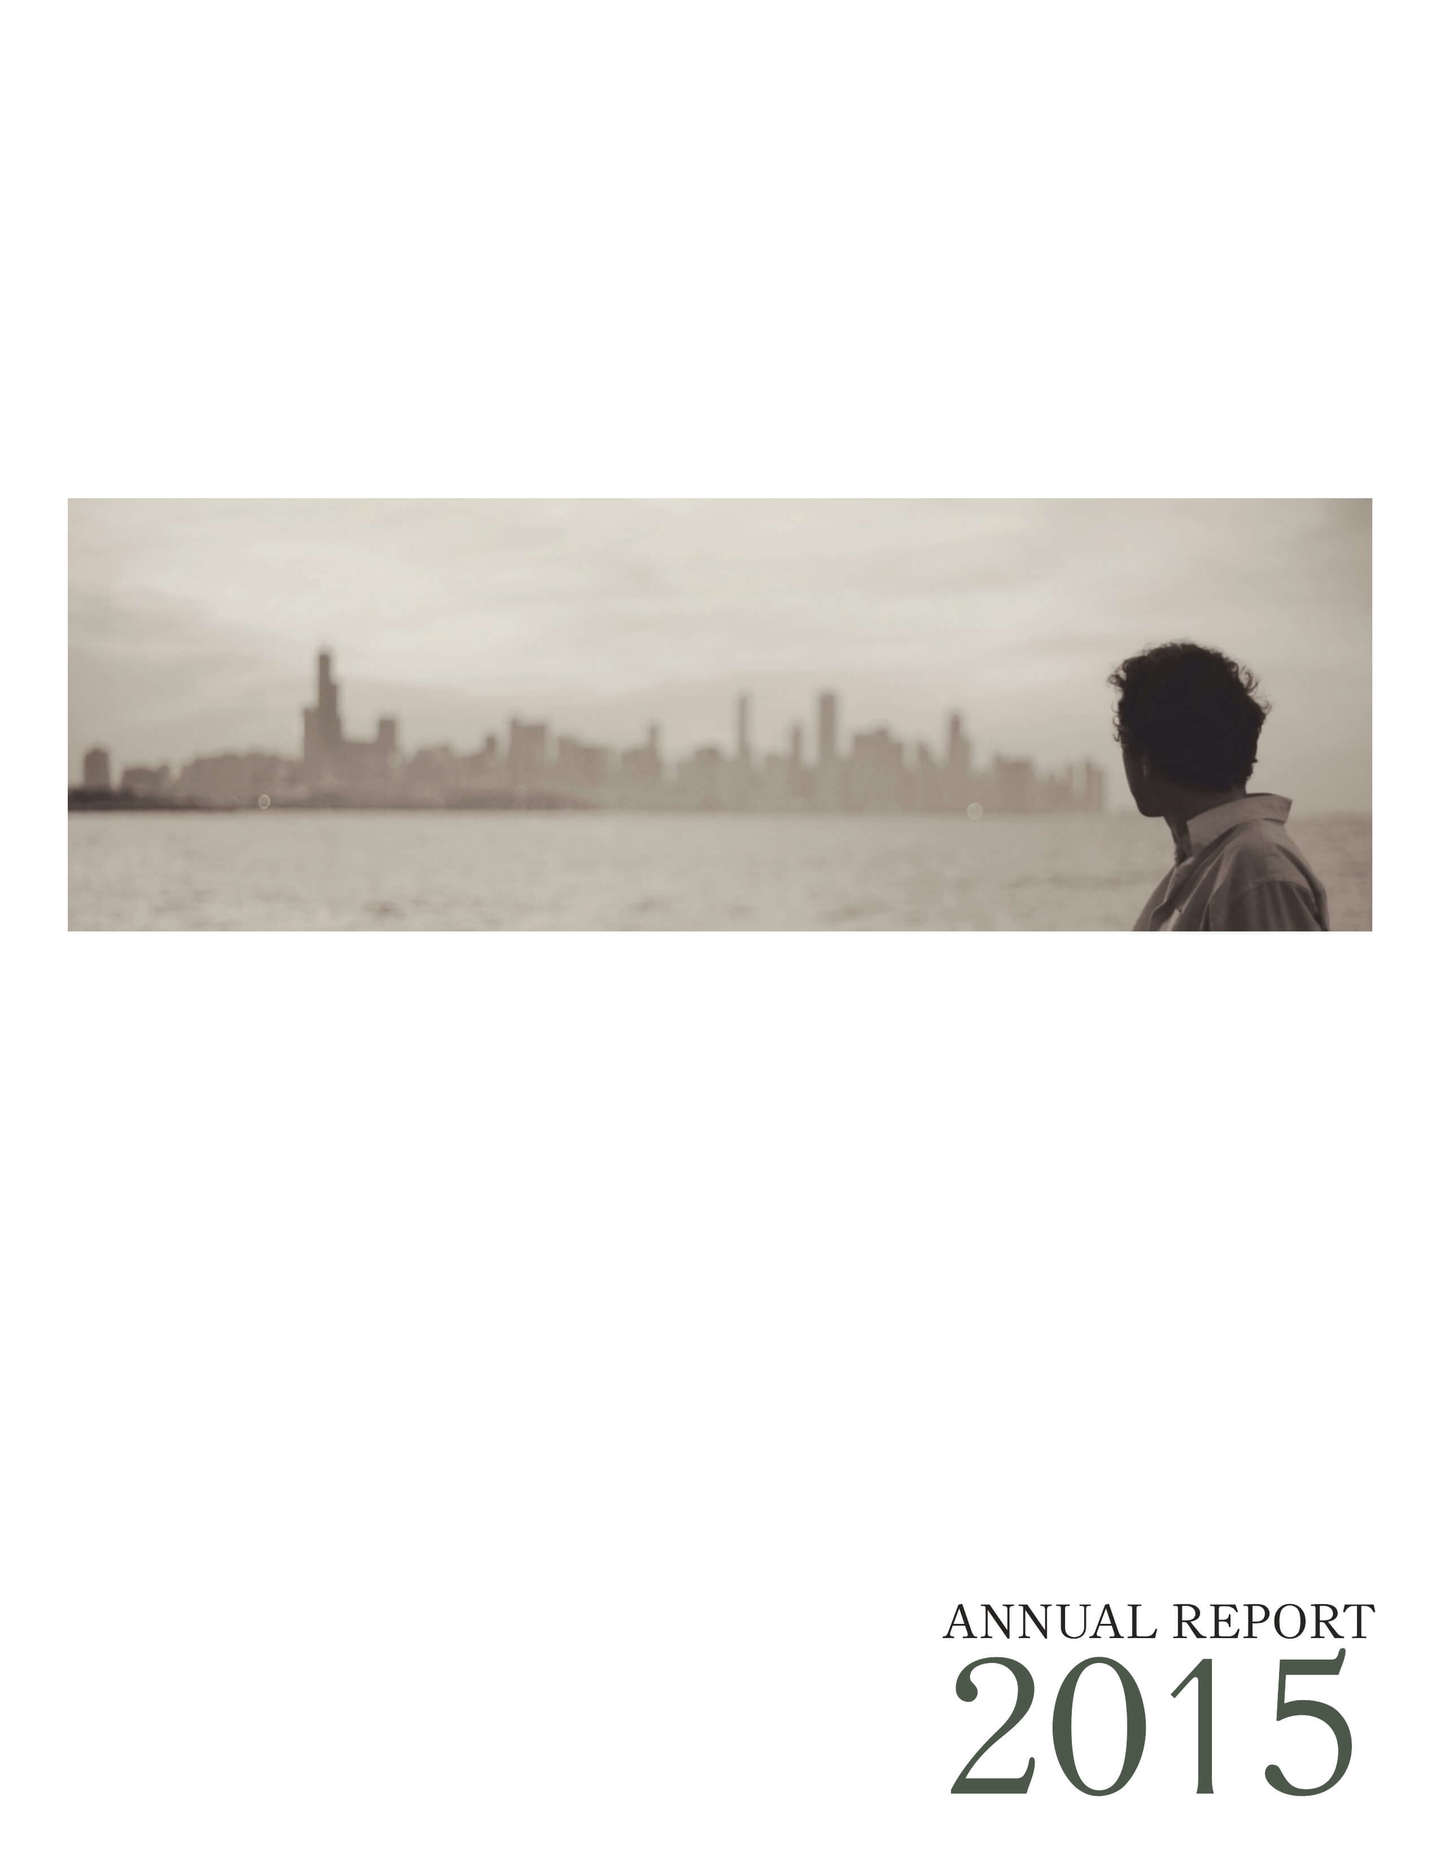 Free Annual Report Templates Examples 6 Free Templates